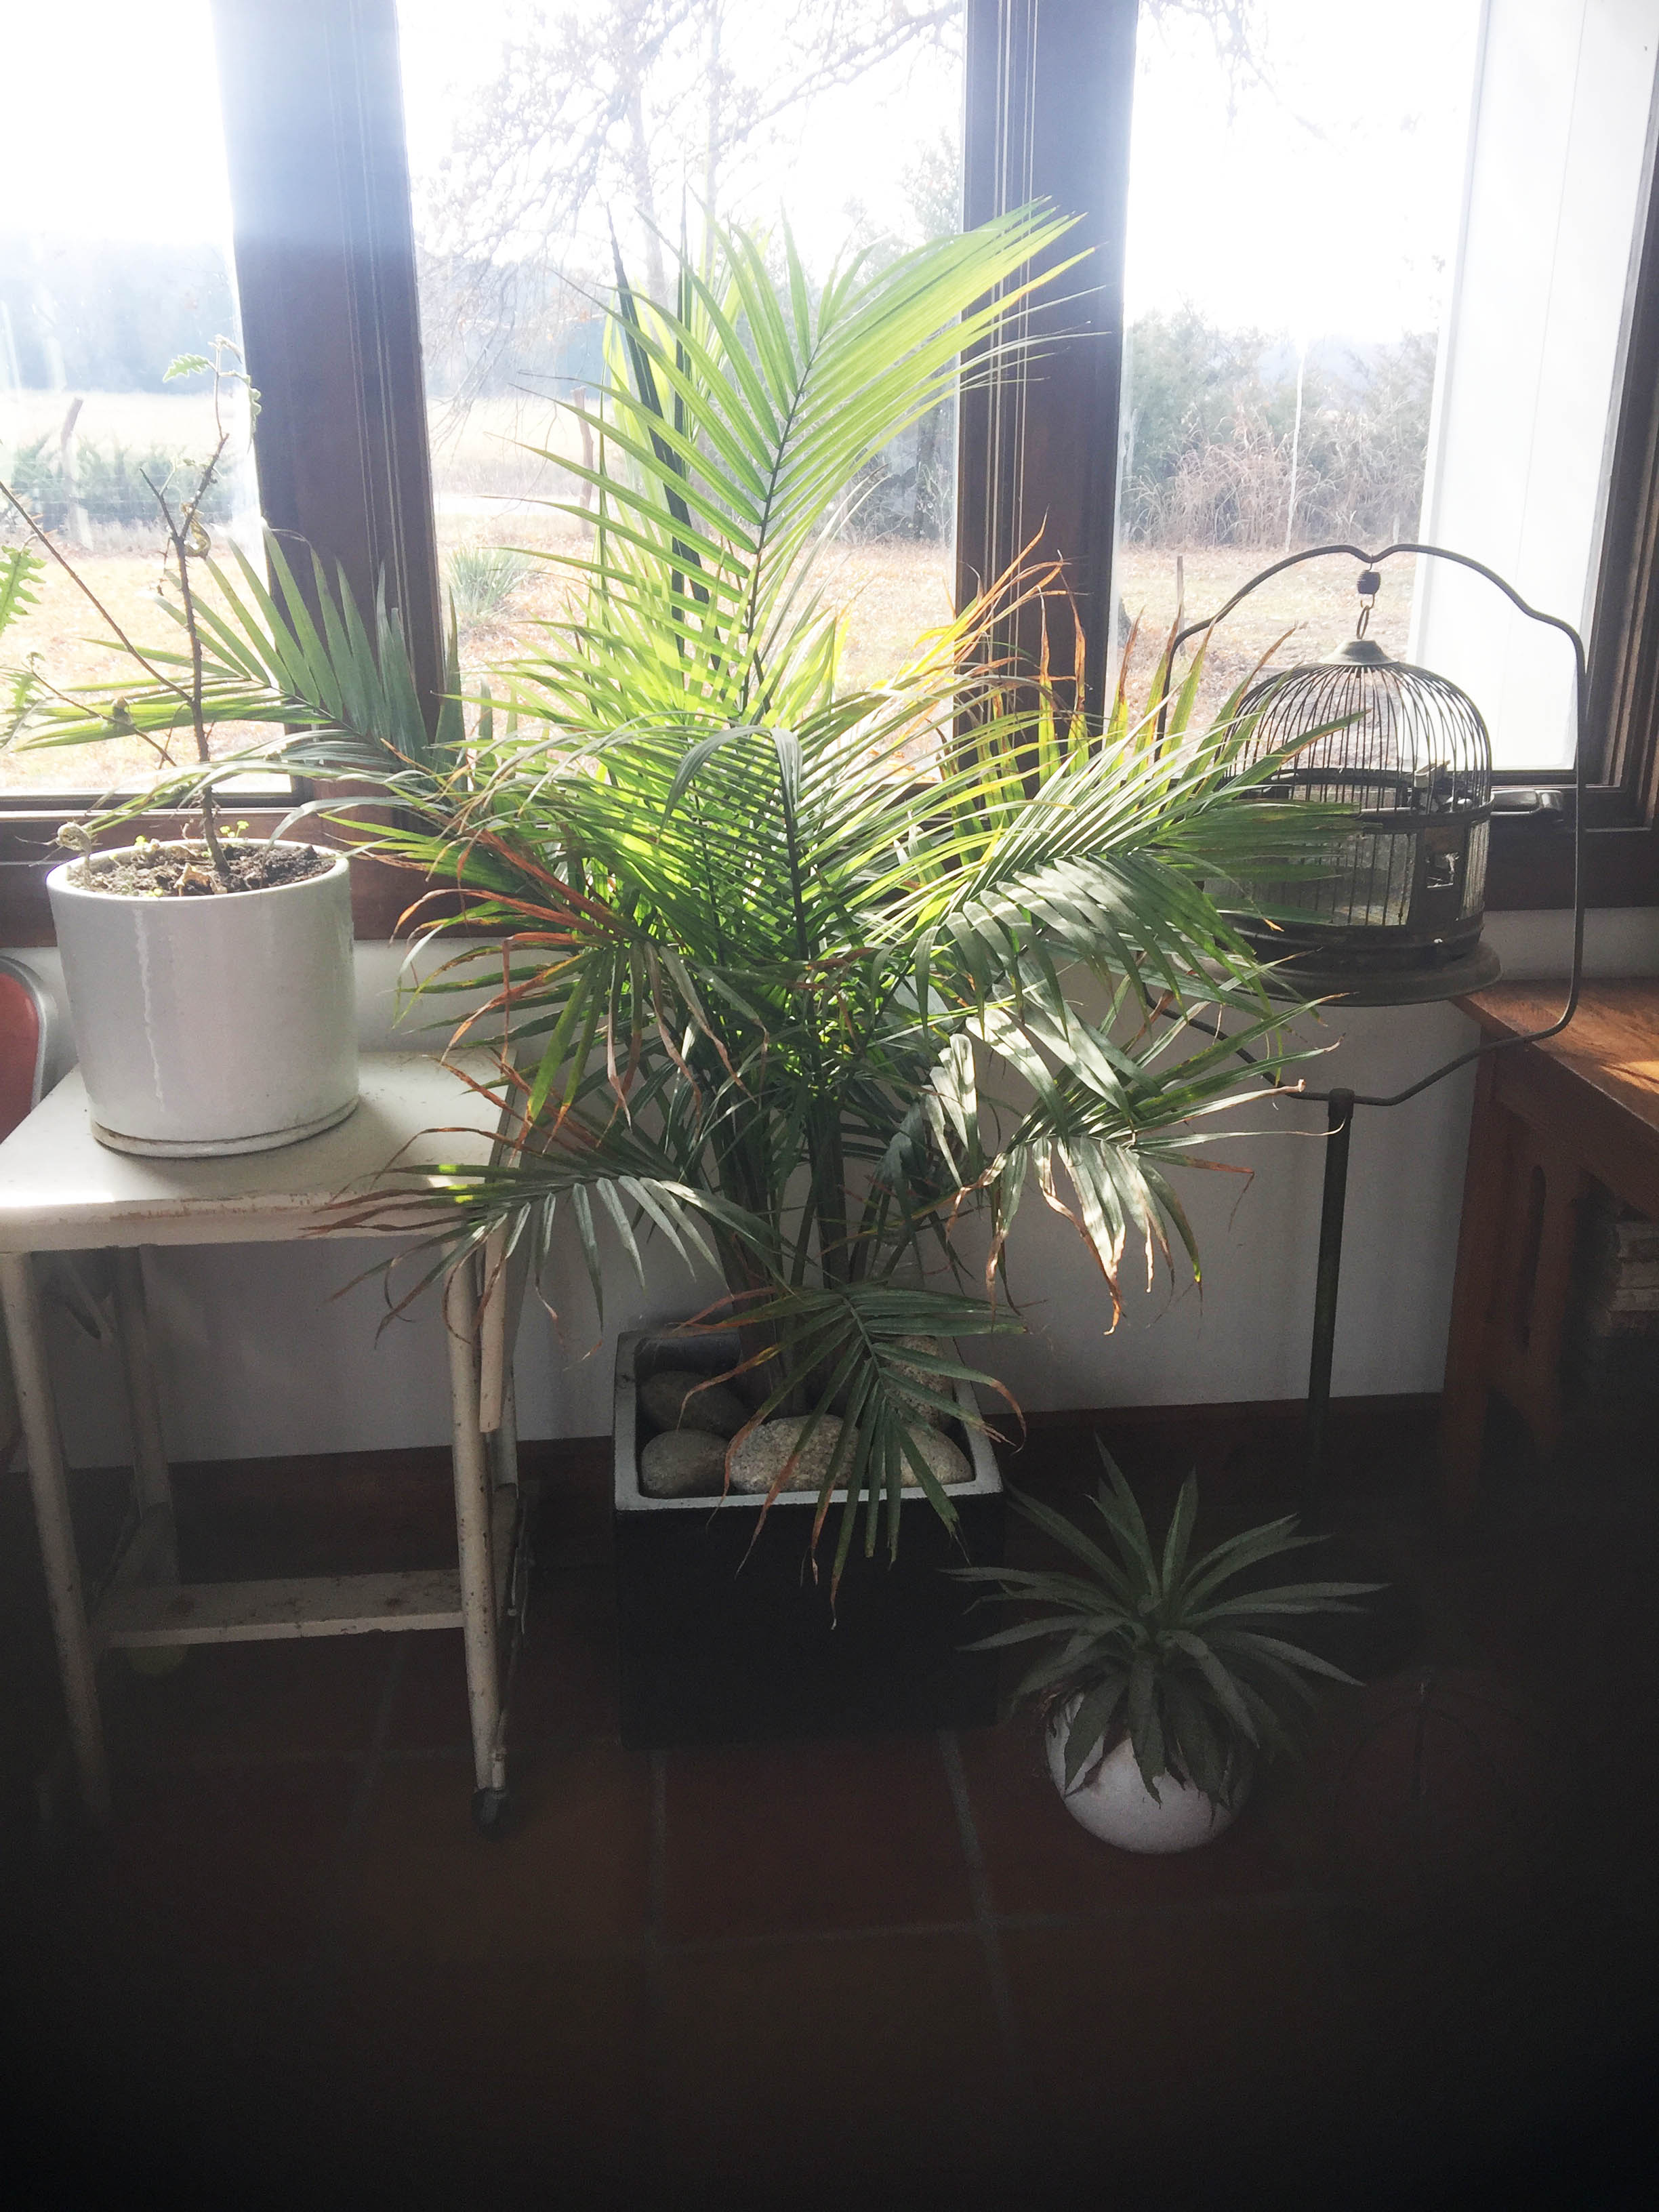 Indoor gardening in winter vinland valley nursery another agave sits beneath our new palm well have small palms available this spring the white pot on the typing table holds a porcupine tomato solanum workwithnaturefo